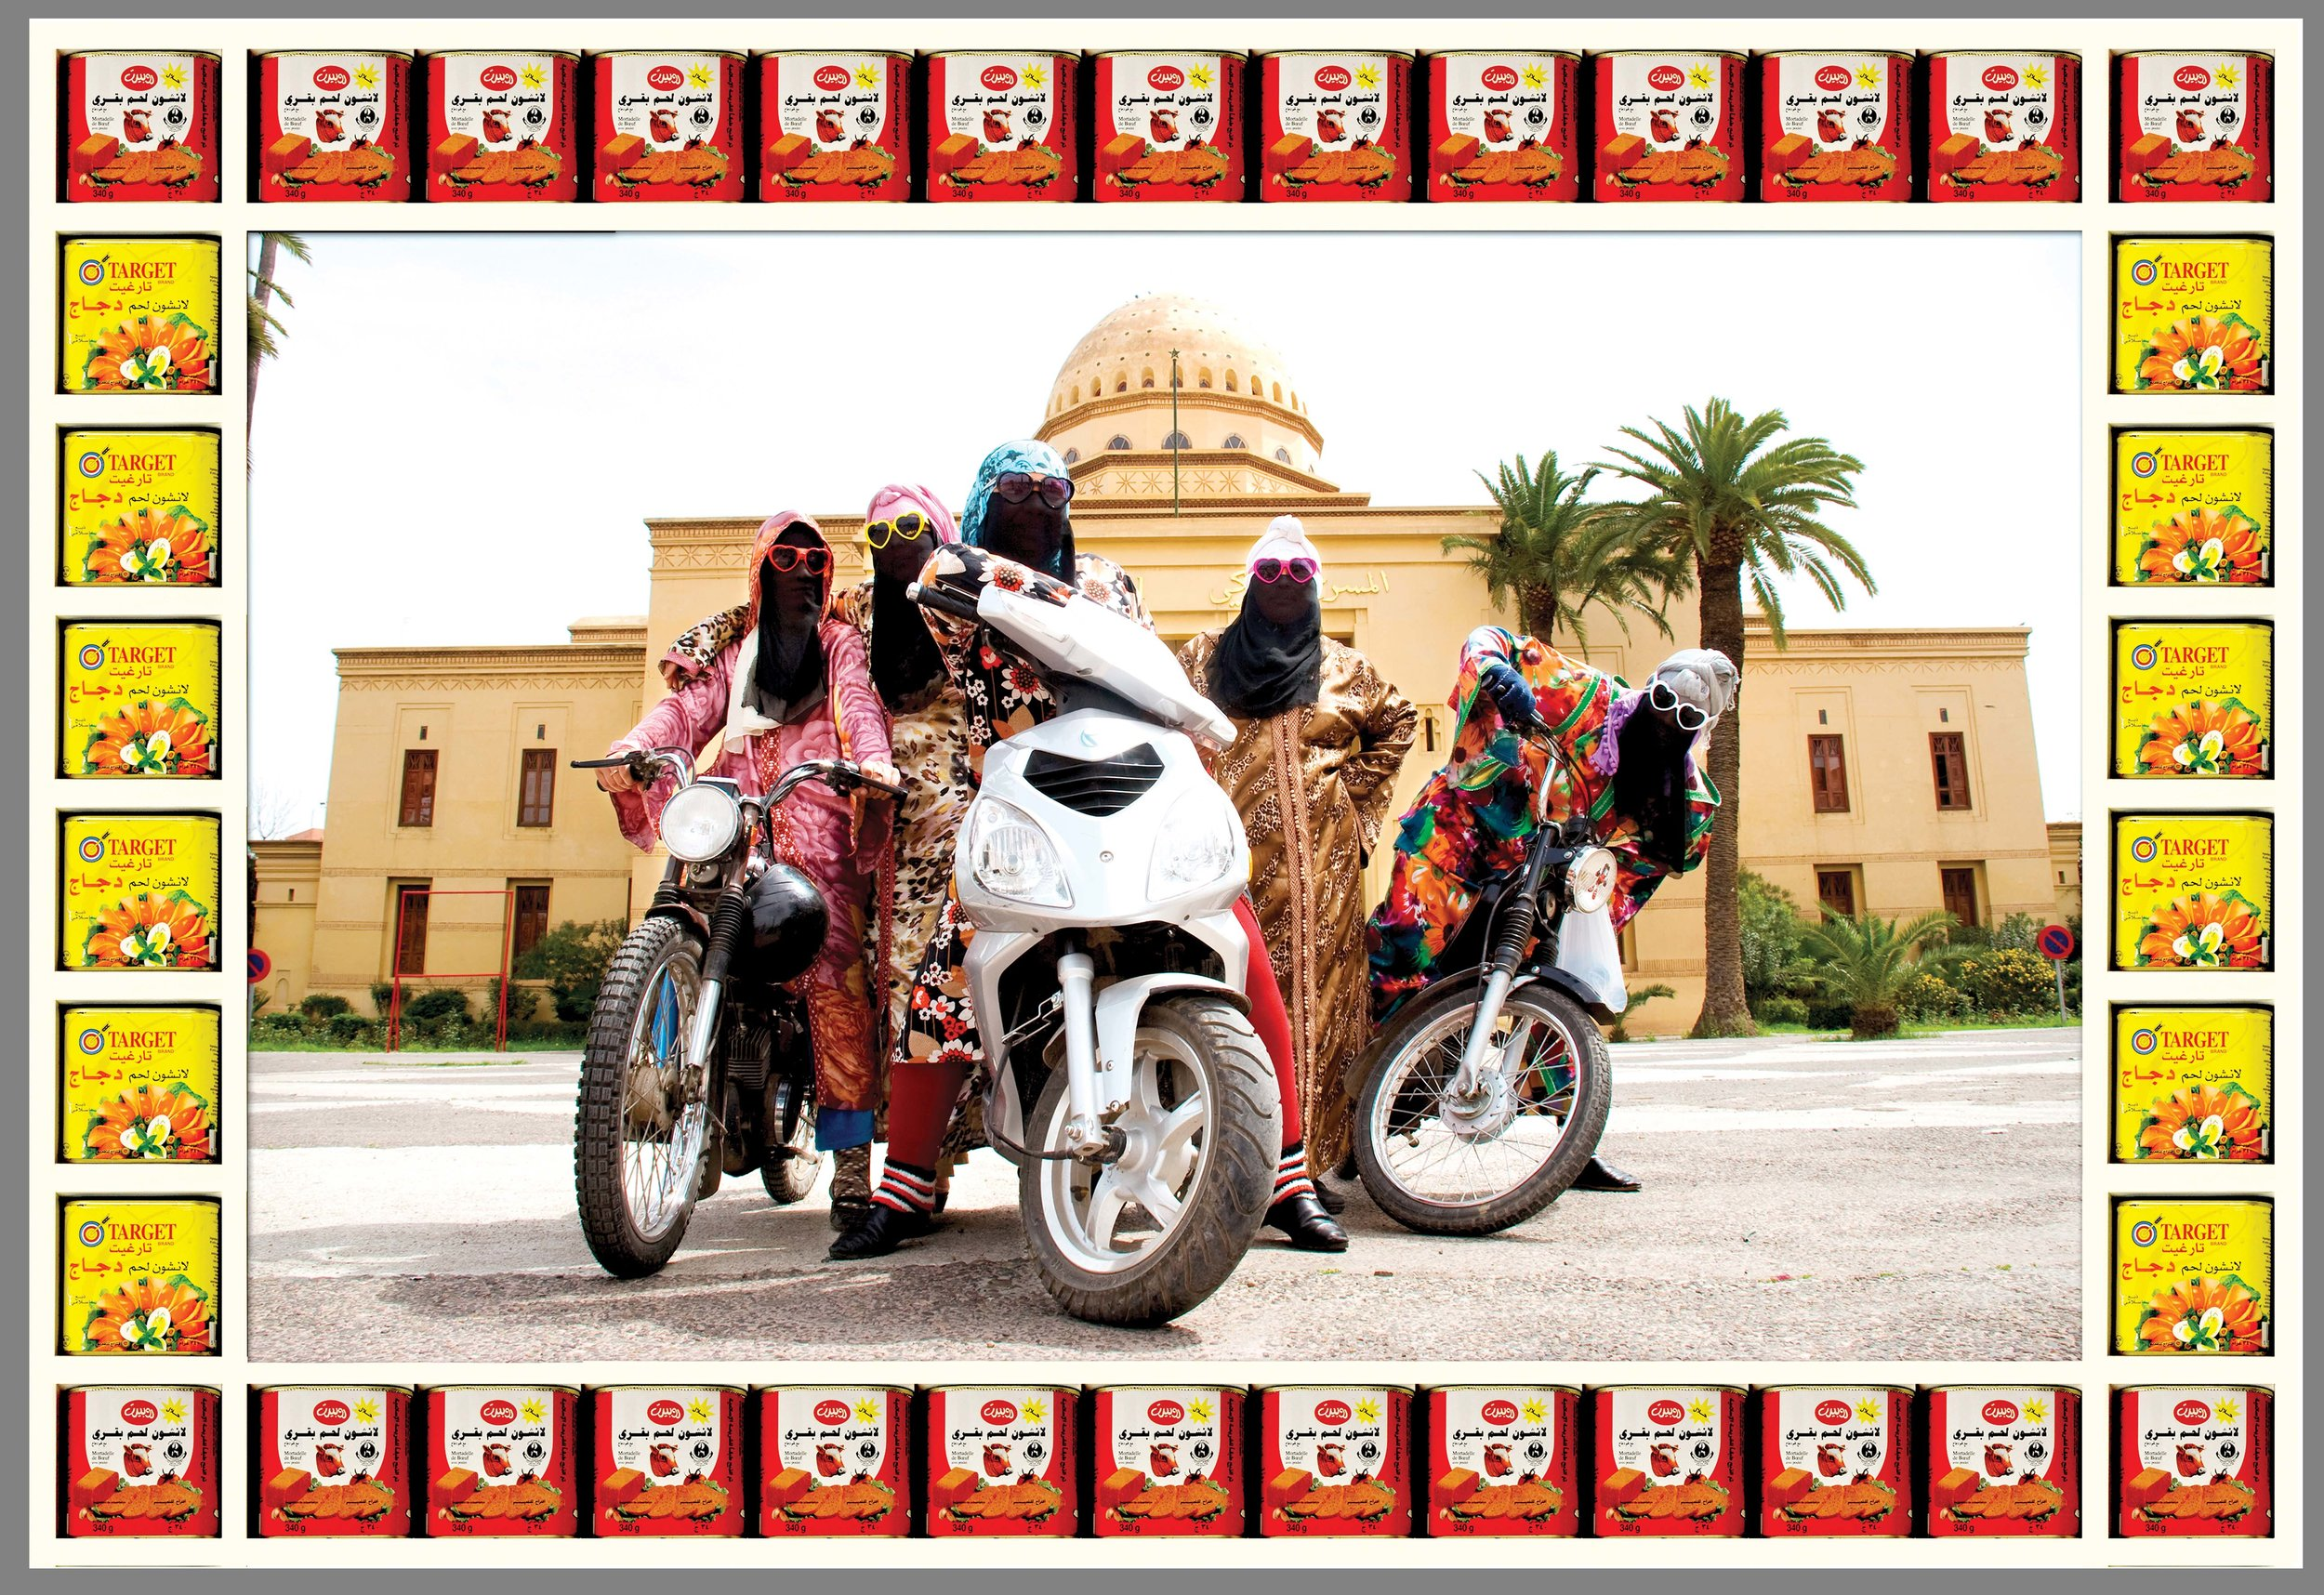 Kesh Angels, photograph by ©Hassan Hajjaj, courtesy of the artist and Vigo Gallery